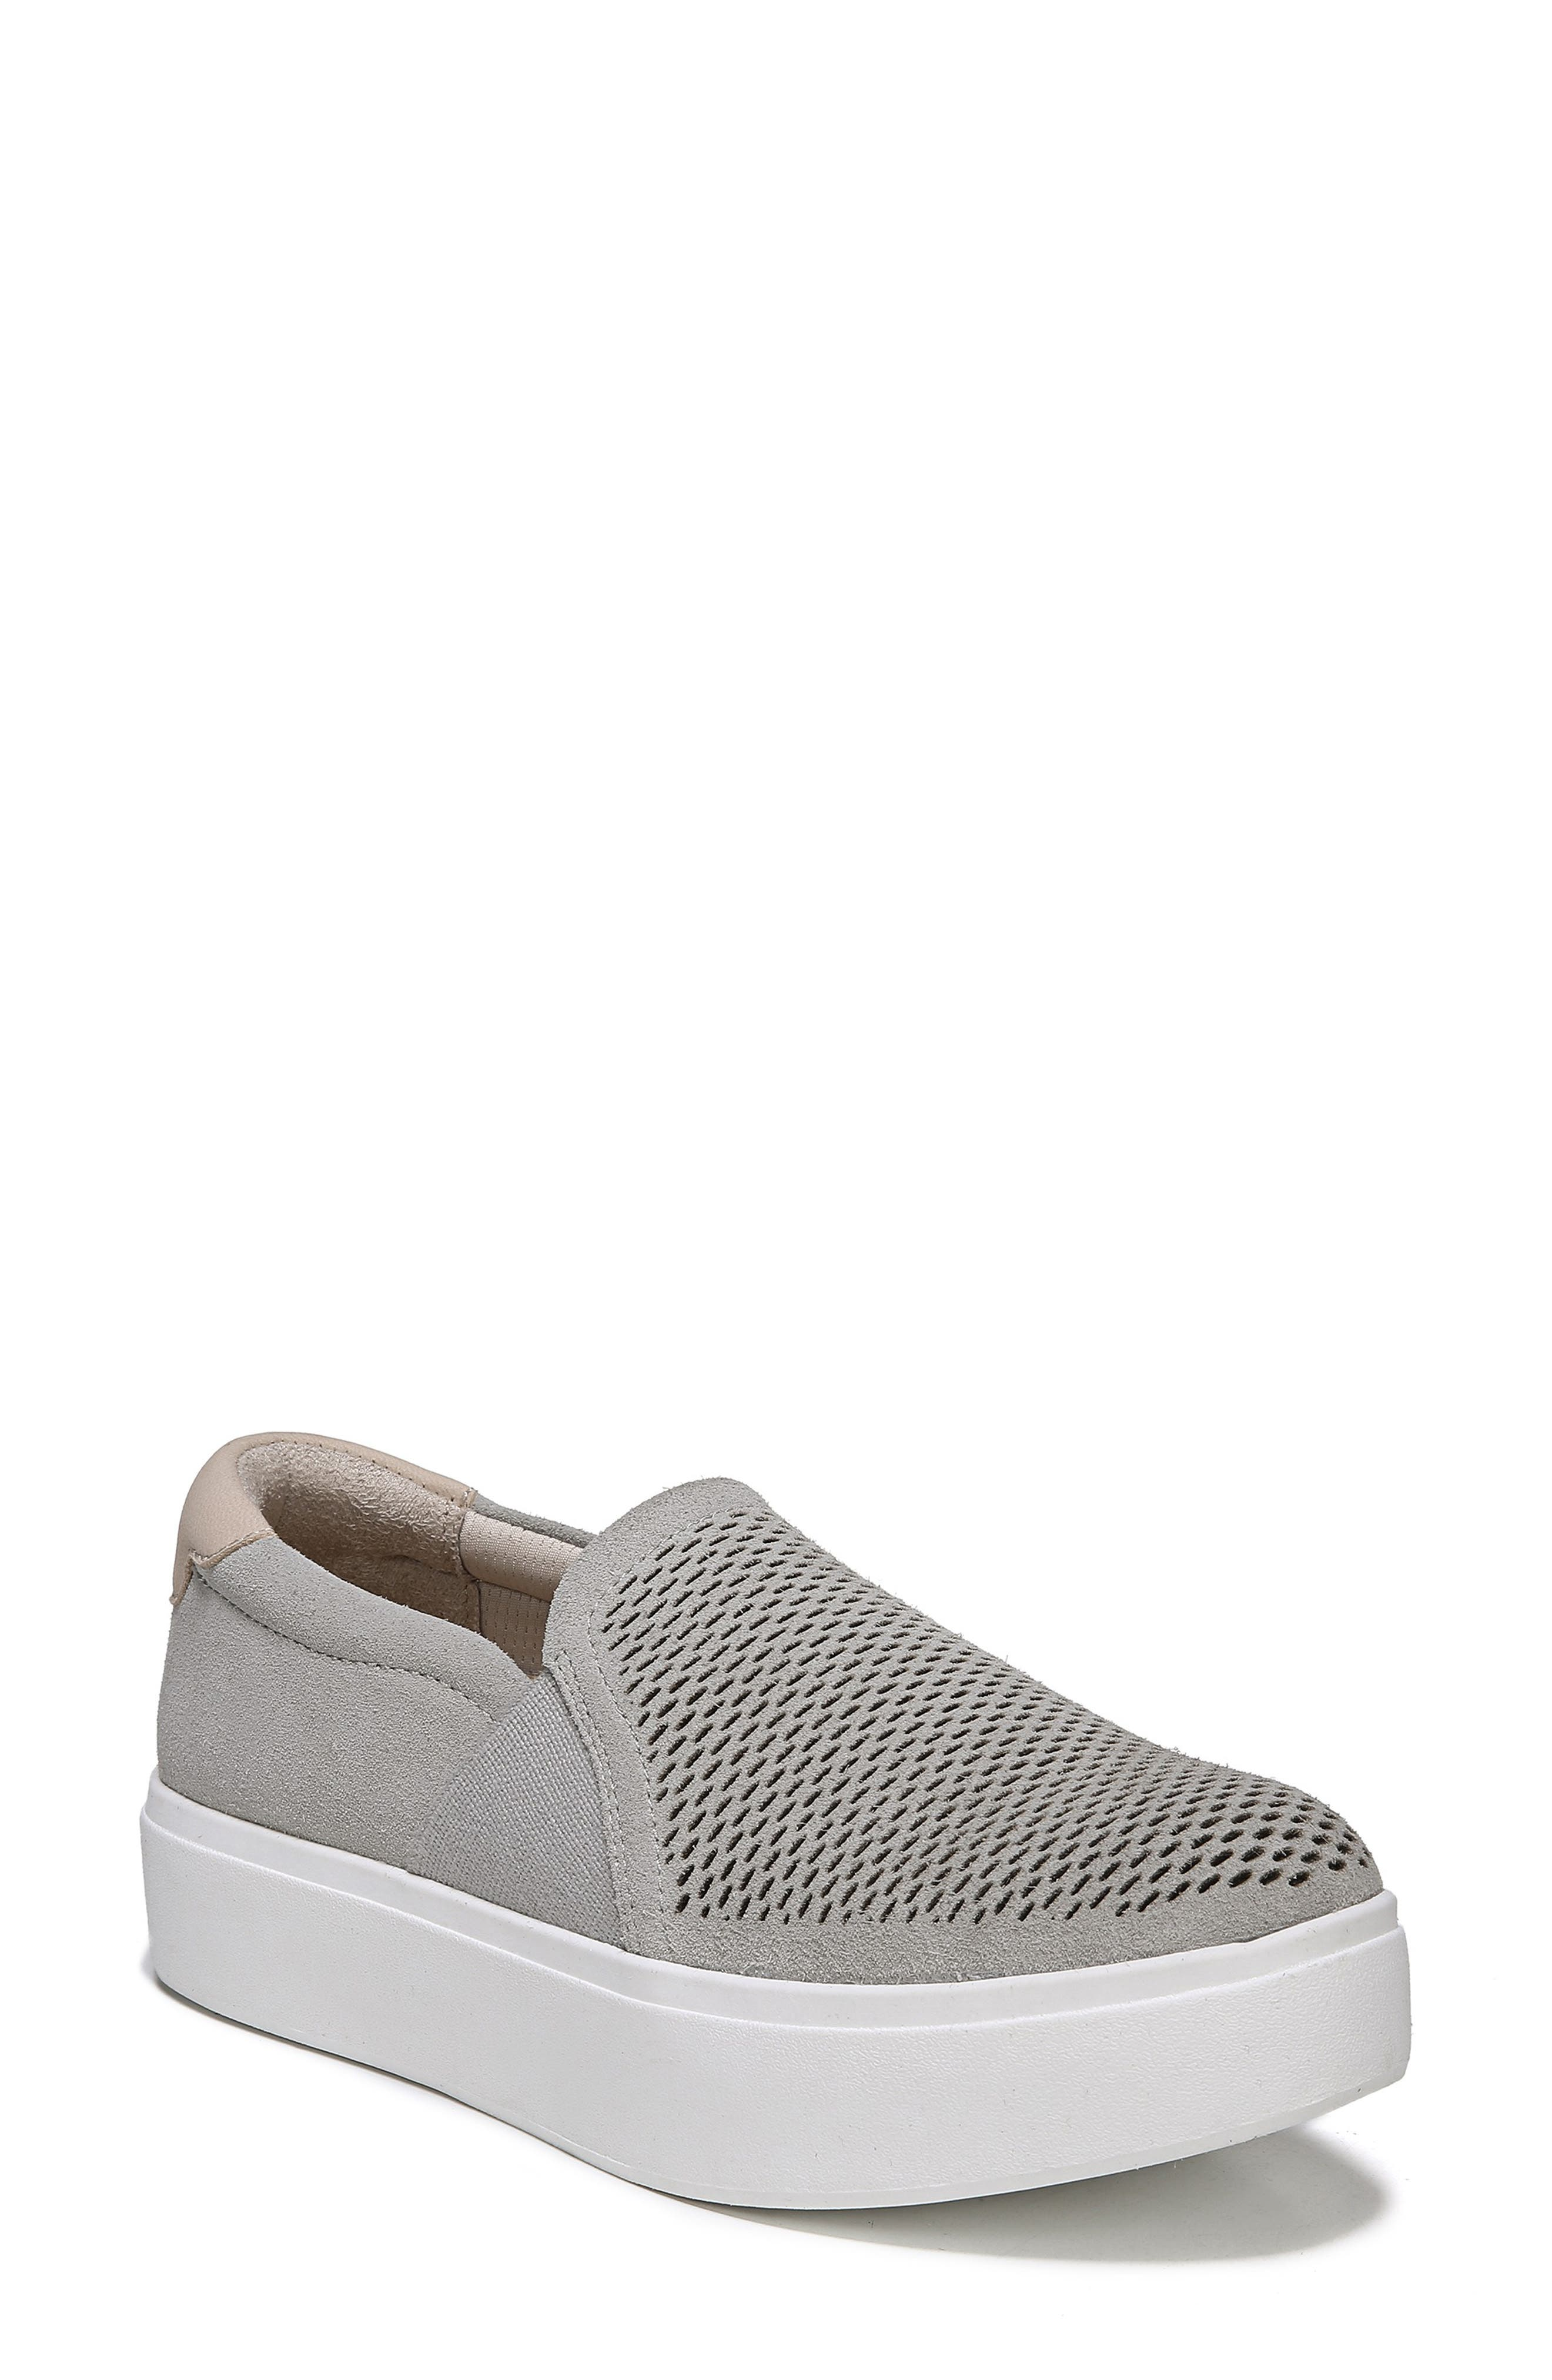 Abbot Lux Sneaker,                             Main thumbnail 1, color,                             GREY LEATHER